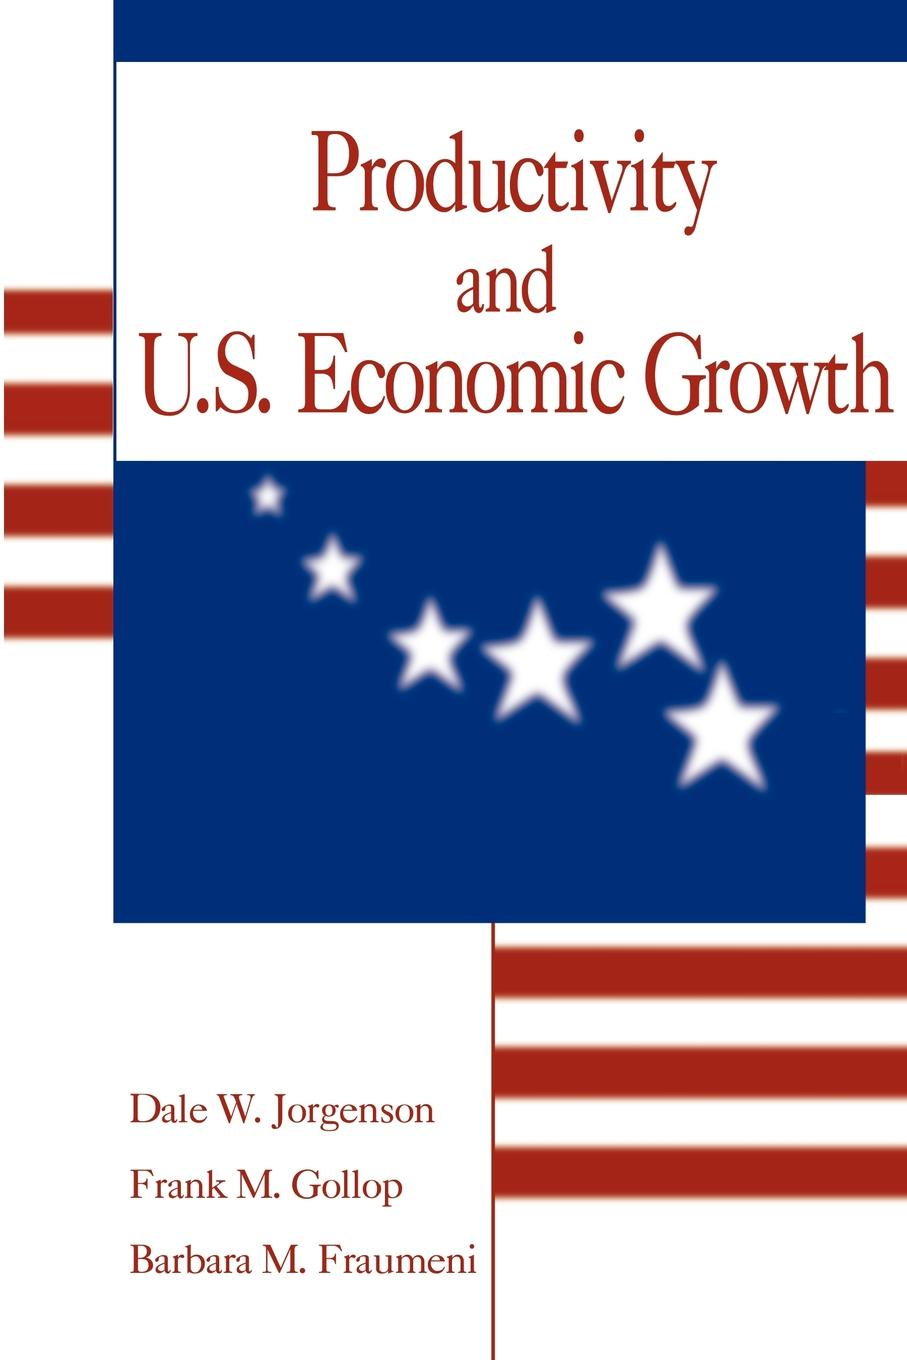 купить Dale Weldeau Jorgenson, Frank M. Gollop, Barbara M. Fraumeni Productivity and U.S. Economic Growth по цене 2714 рублей